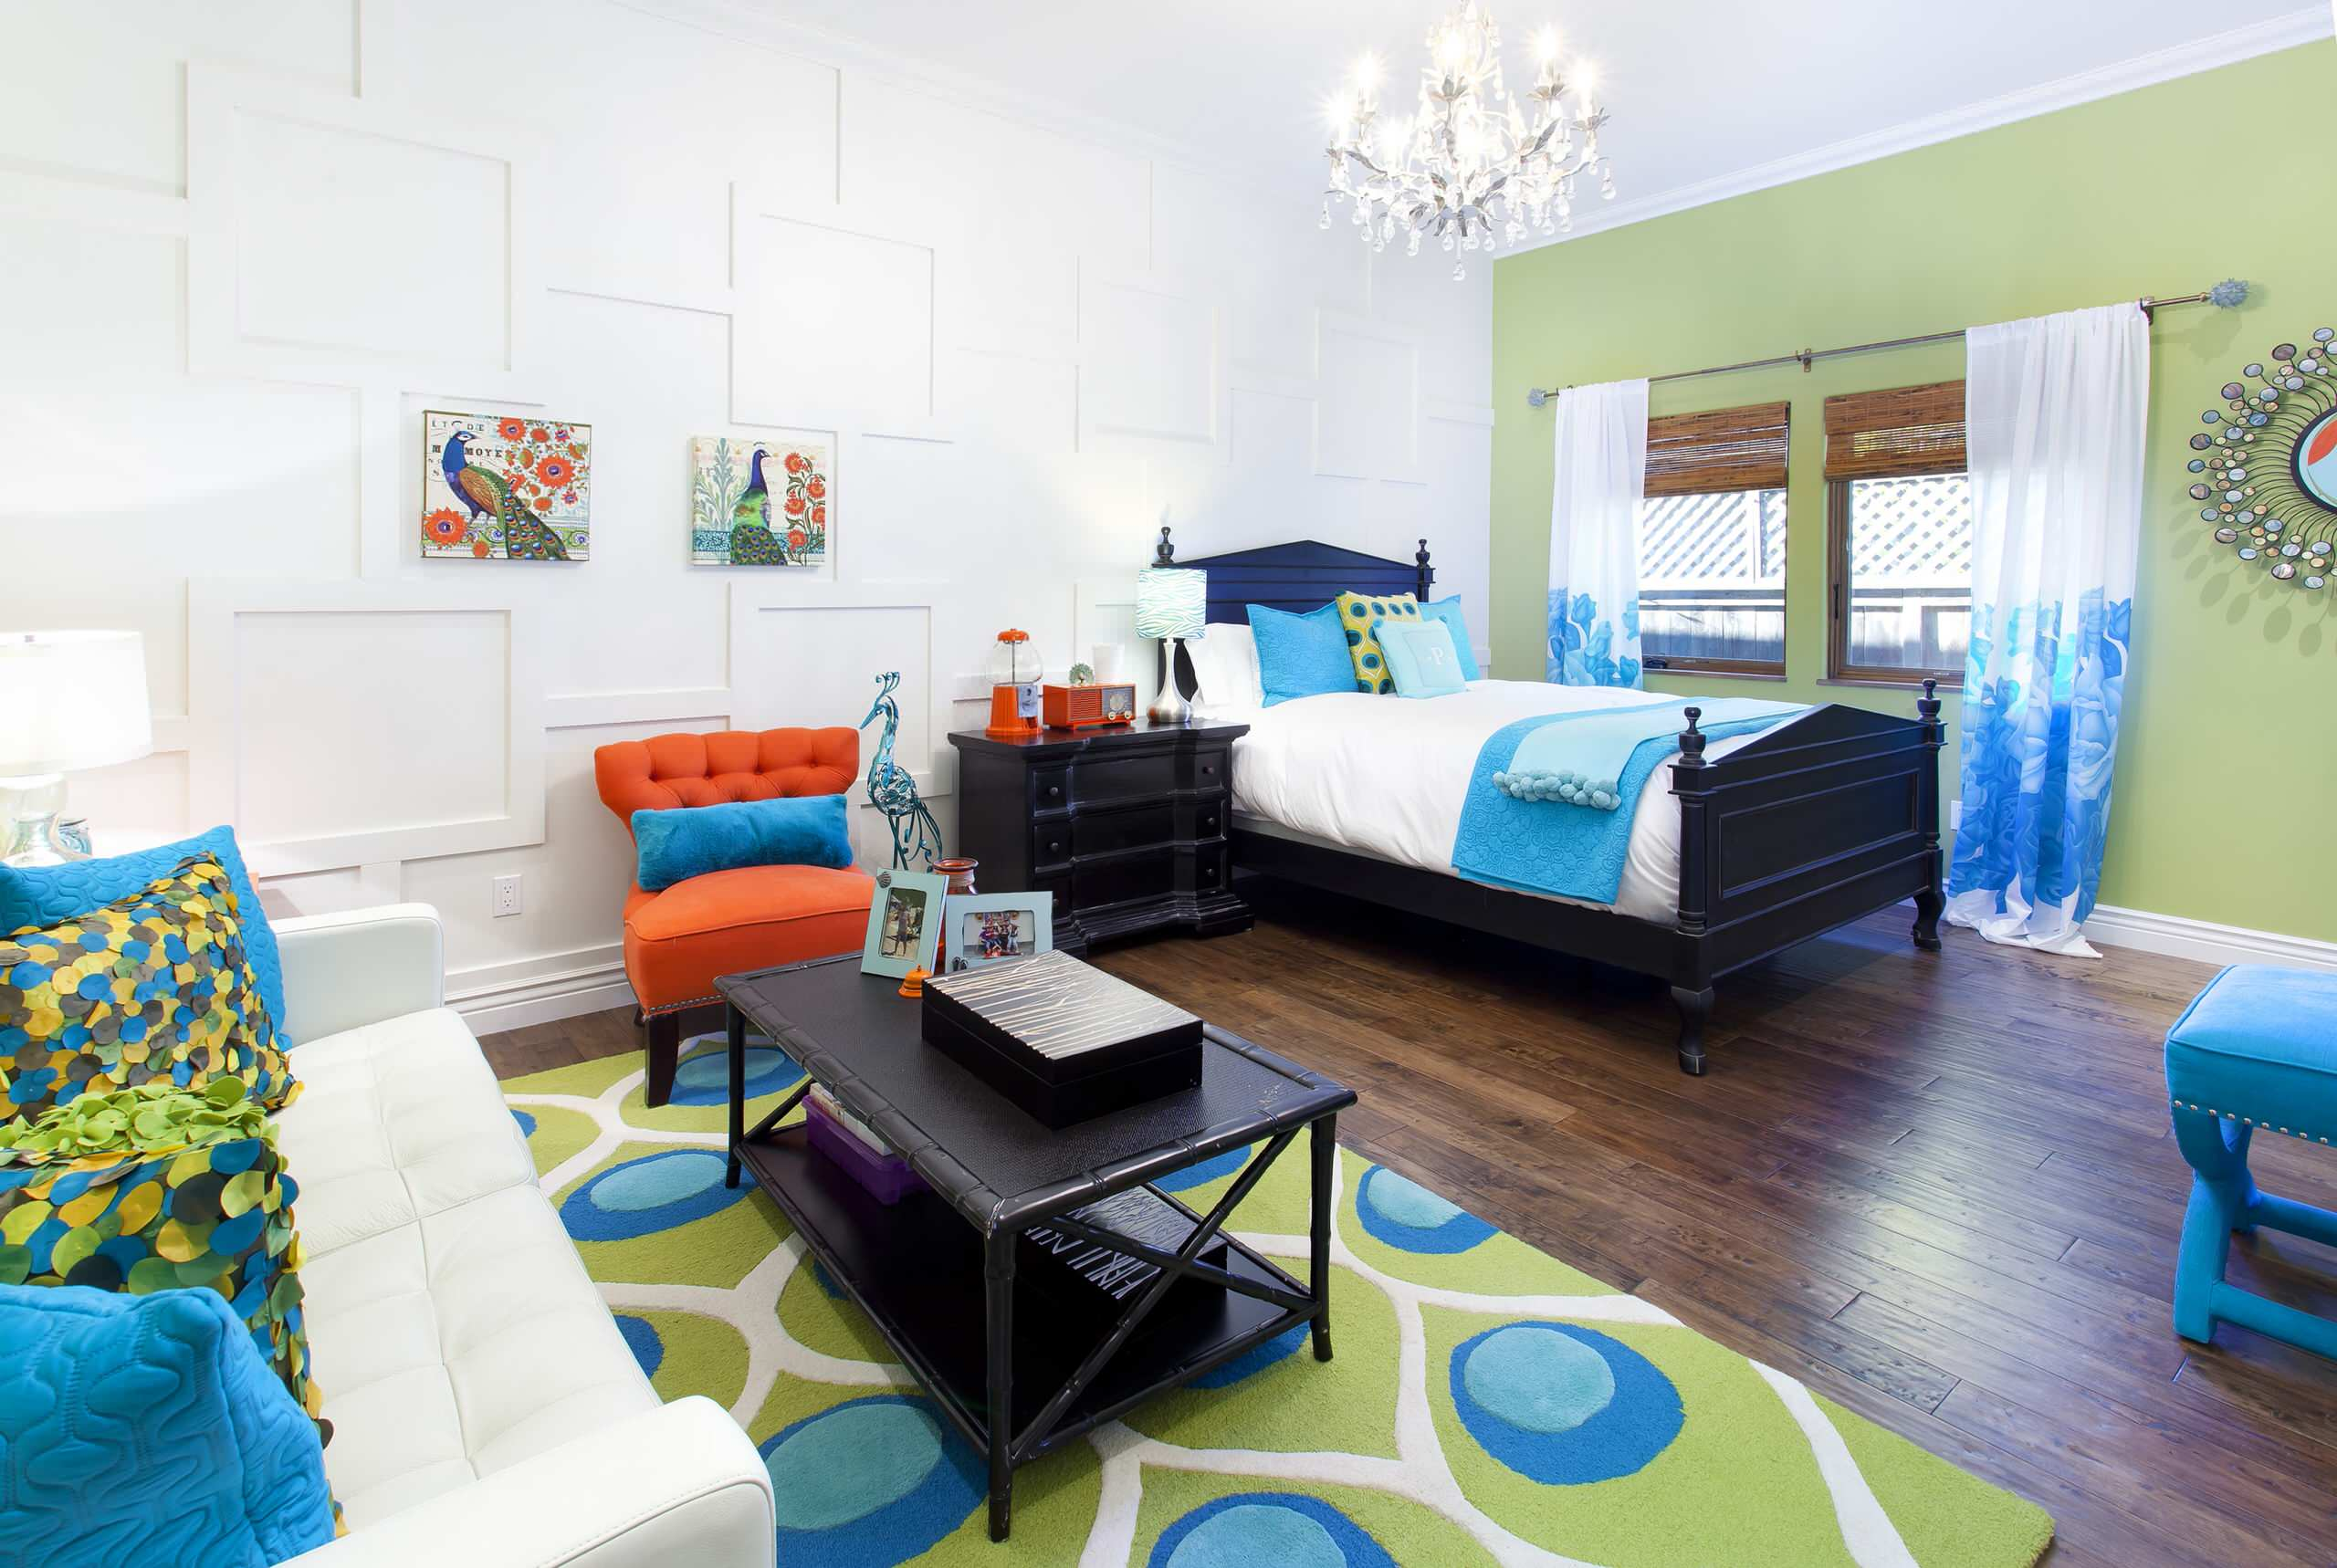 Inspiring Decorative Wall Panels with Visual Effect for Your Home: Inspiring Bedroom Chandelier And Black Bed Plus Black Coffee Table Also Decorative Pillows For Couches On White Sofa In Mediterranean Kids With Colorful Bedroom Plus Decorative Wall Panels